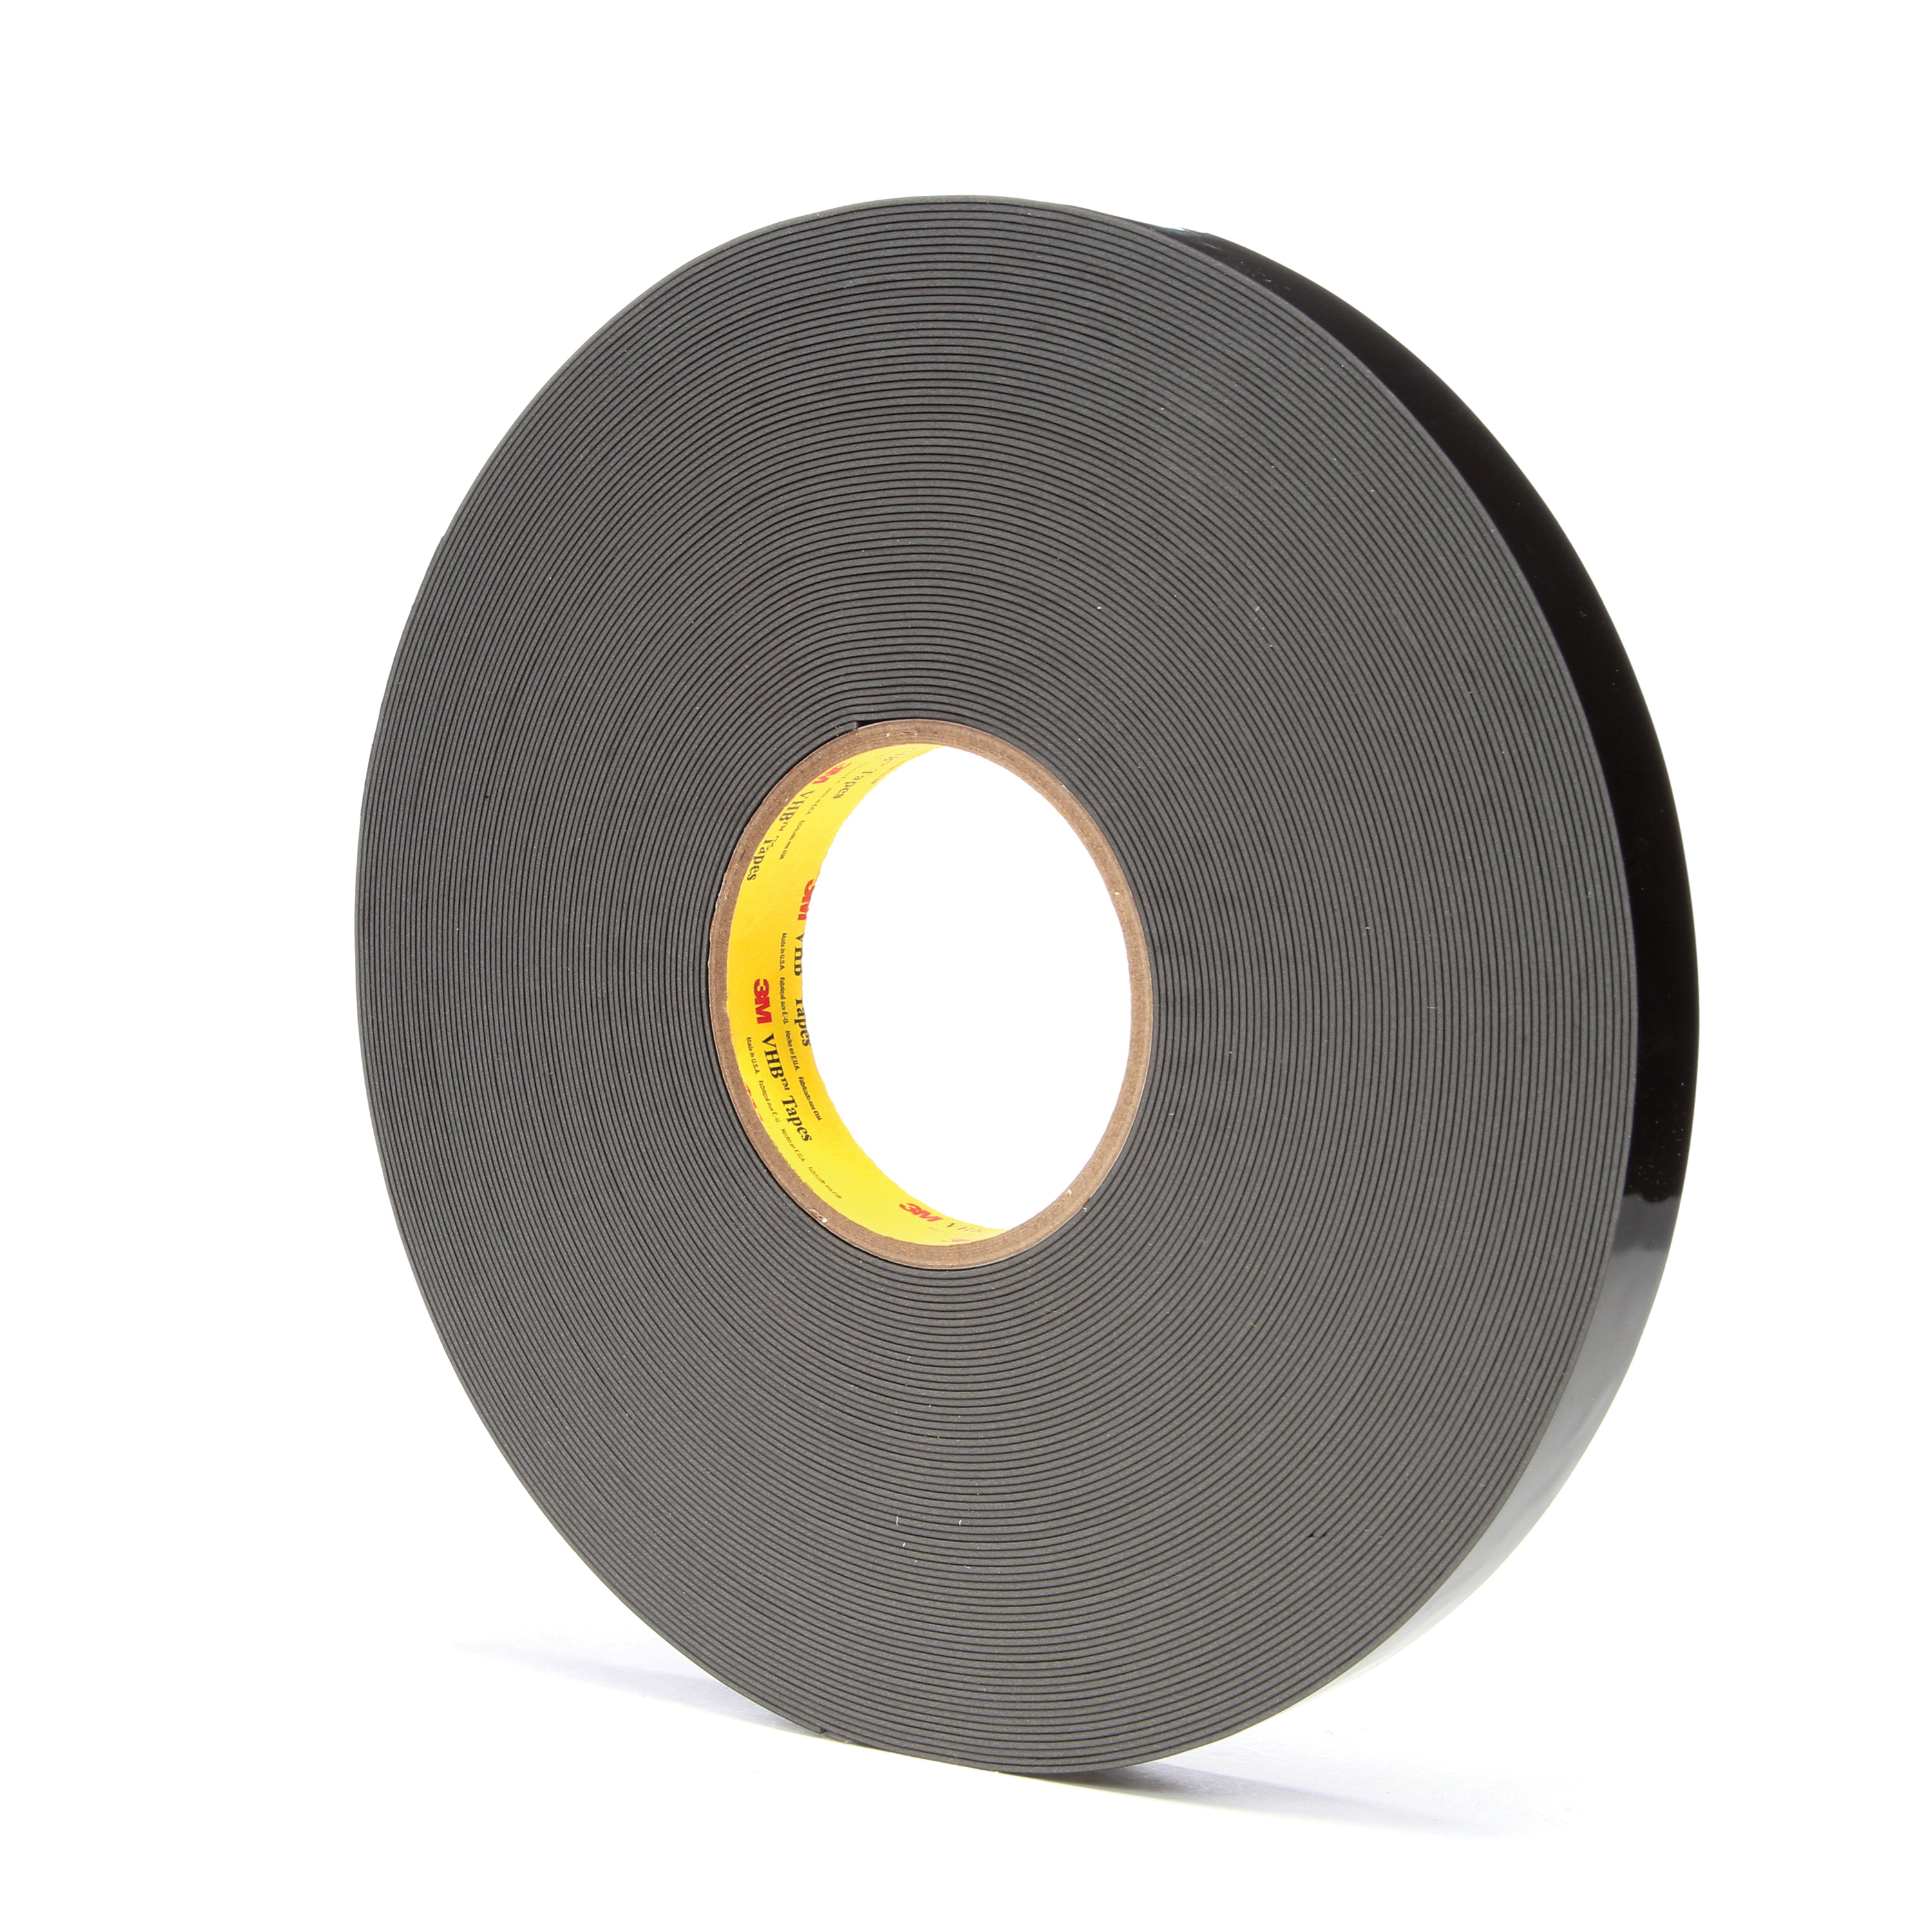 3M™ VHB™ 021200-67497 High Strength Double Sided Bonding Tape, 36 yd L x 3/4 in W, 0.045 in THK, General Purpose Acrylic Adhesive, Acrylic Foam Backing, Black